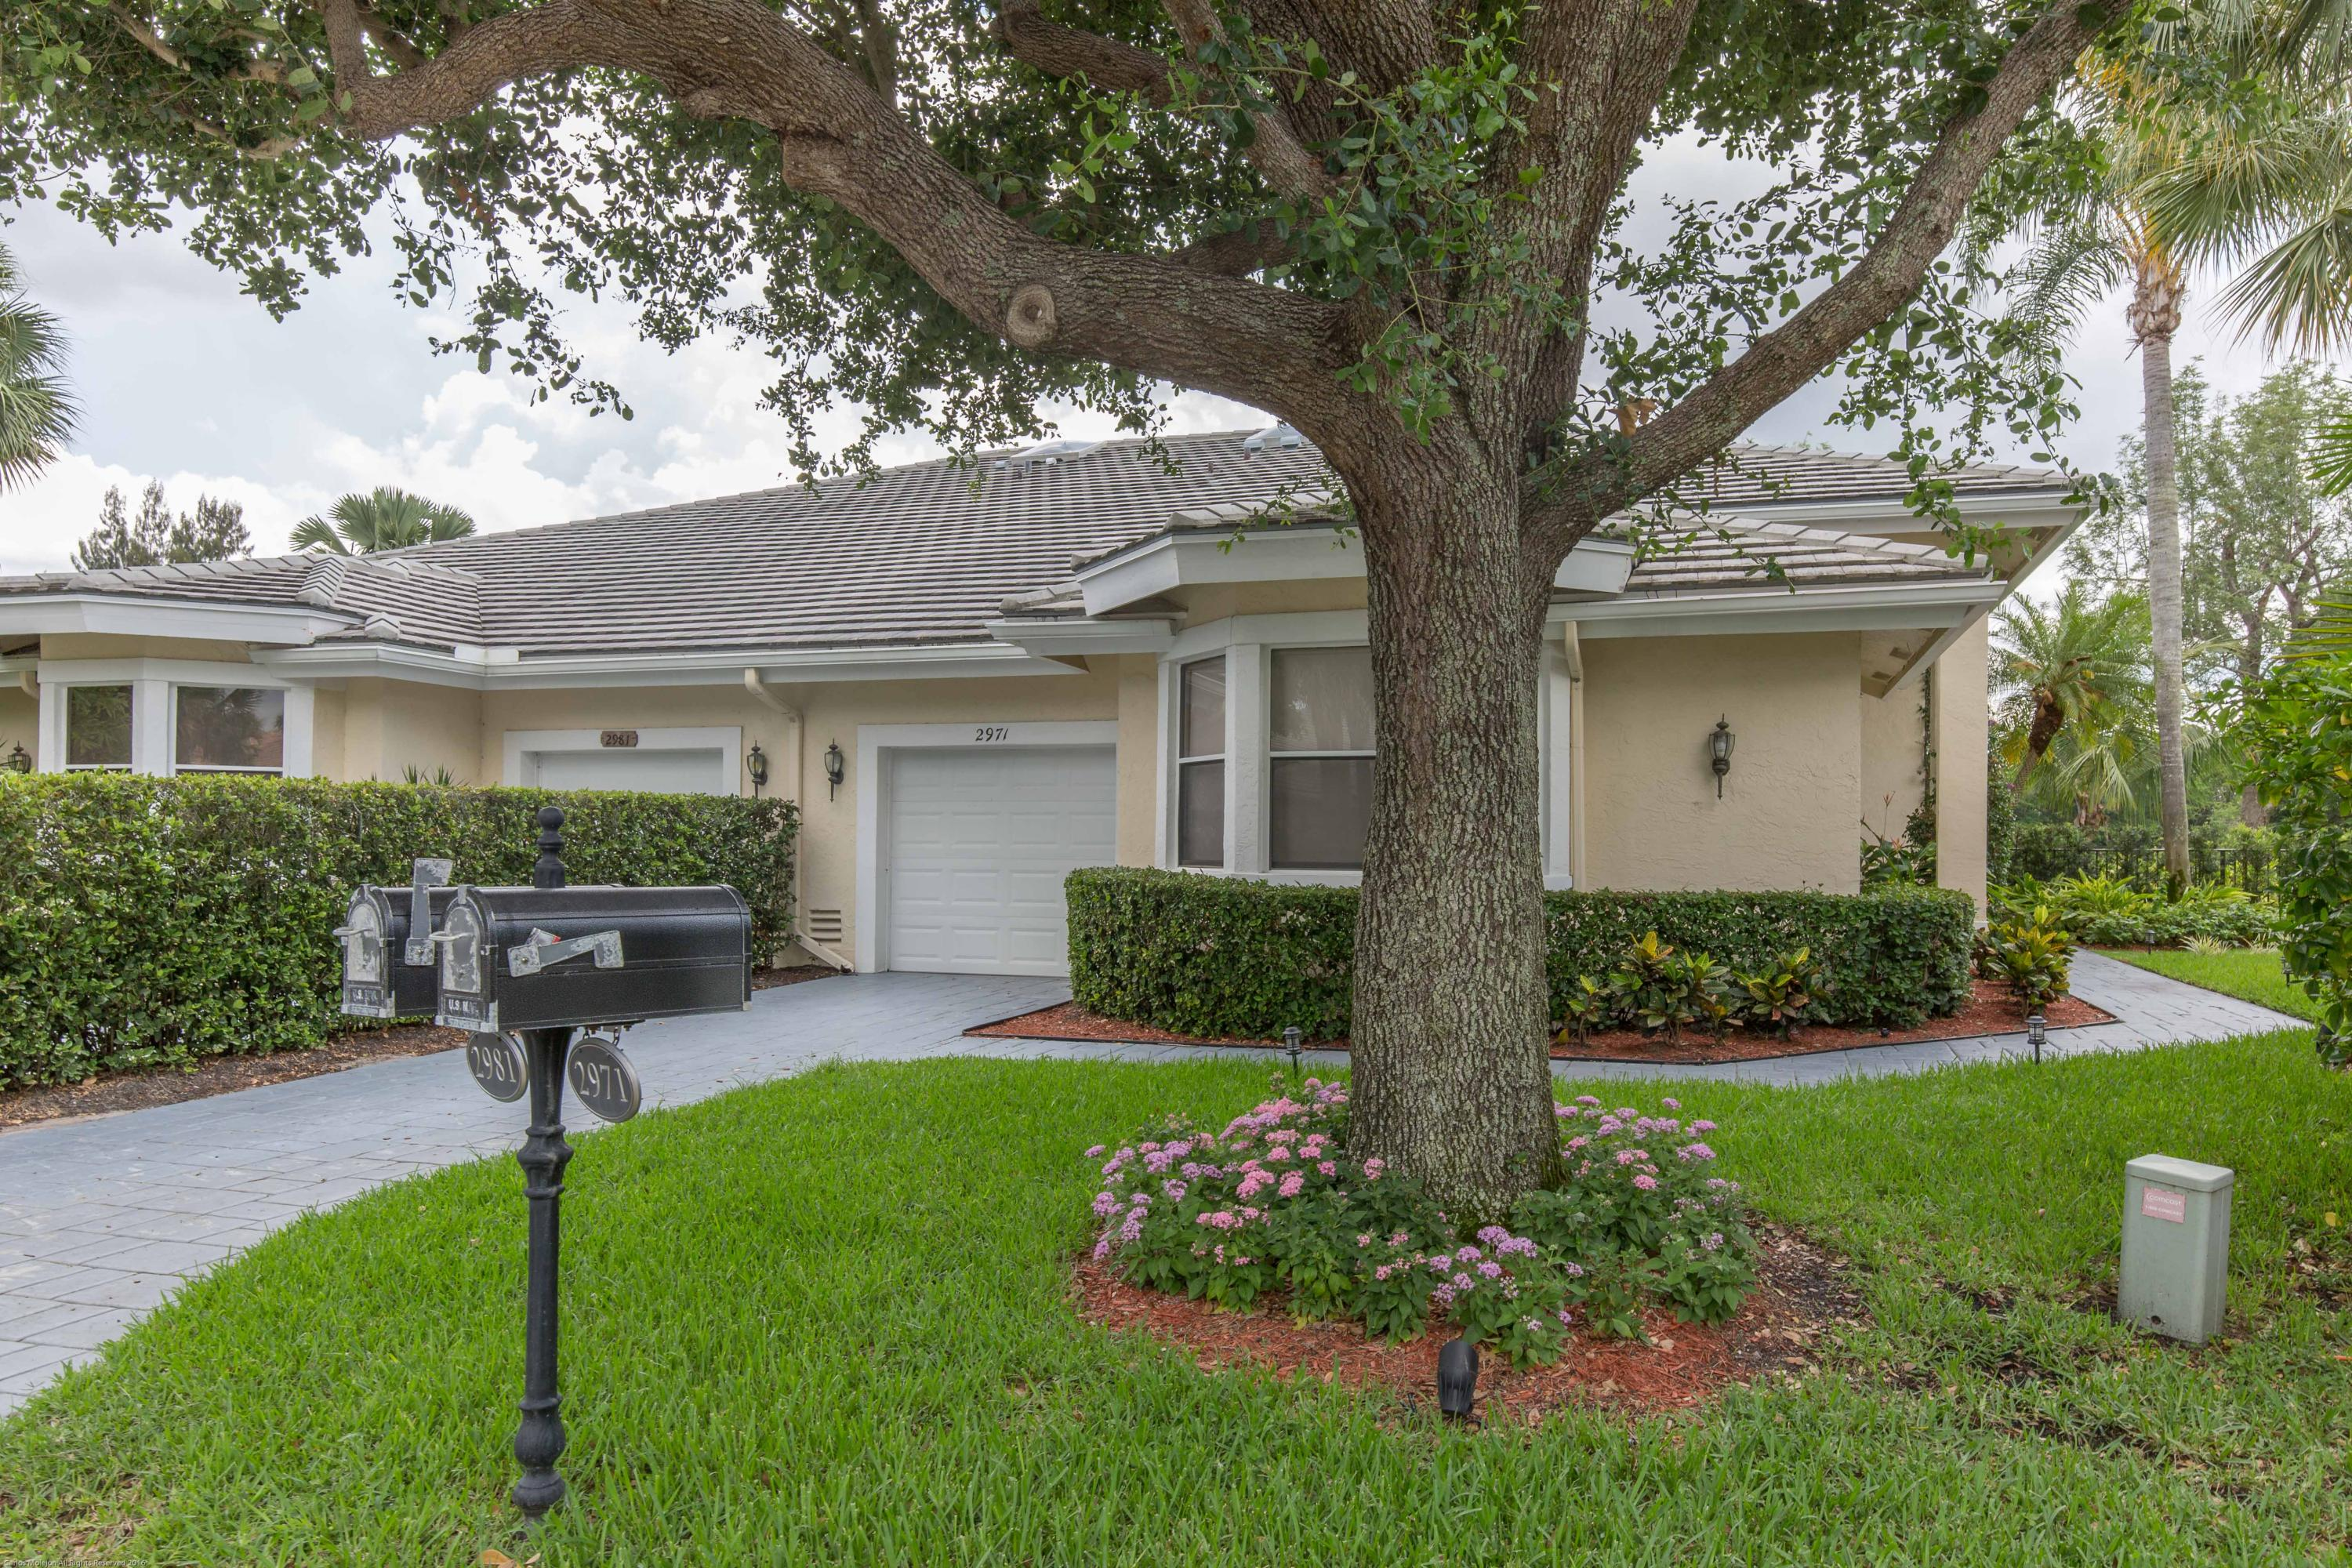 2971 Twin Oaks Way, Wellington, Florida 33414, 3 Bedrooms Bedrooms, ,2.1 BathroomsBathrooms,Villa,For Rent,Palm Beach Polo,Twin Oaks,1,RX-10524529